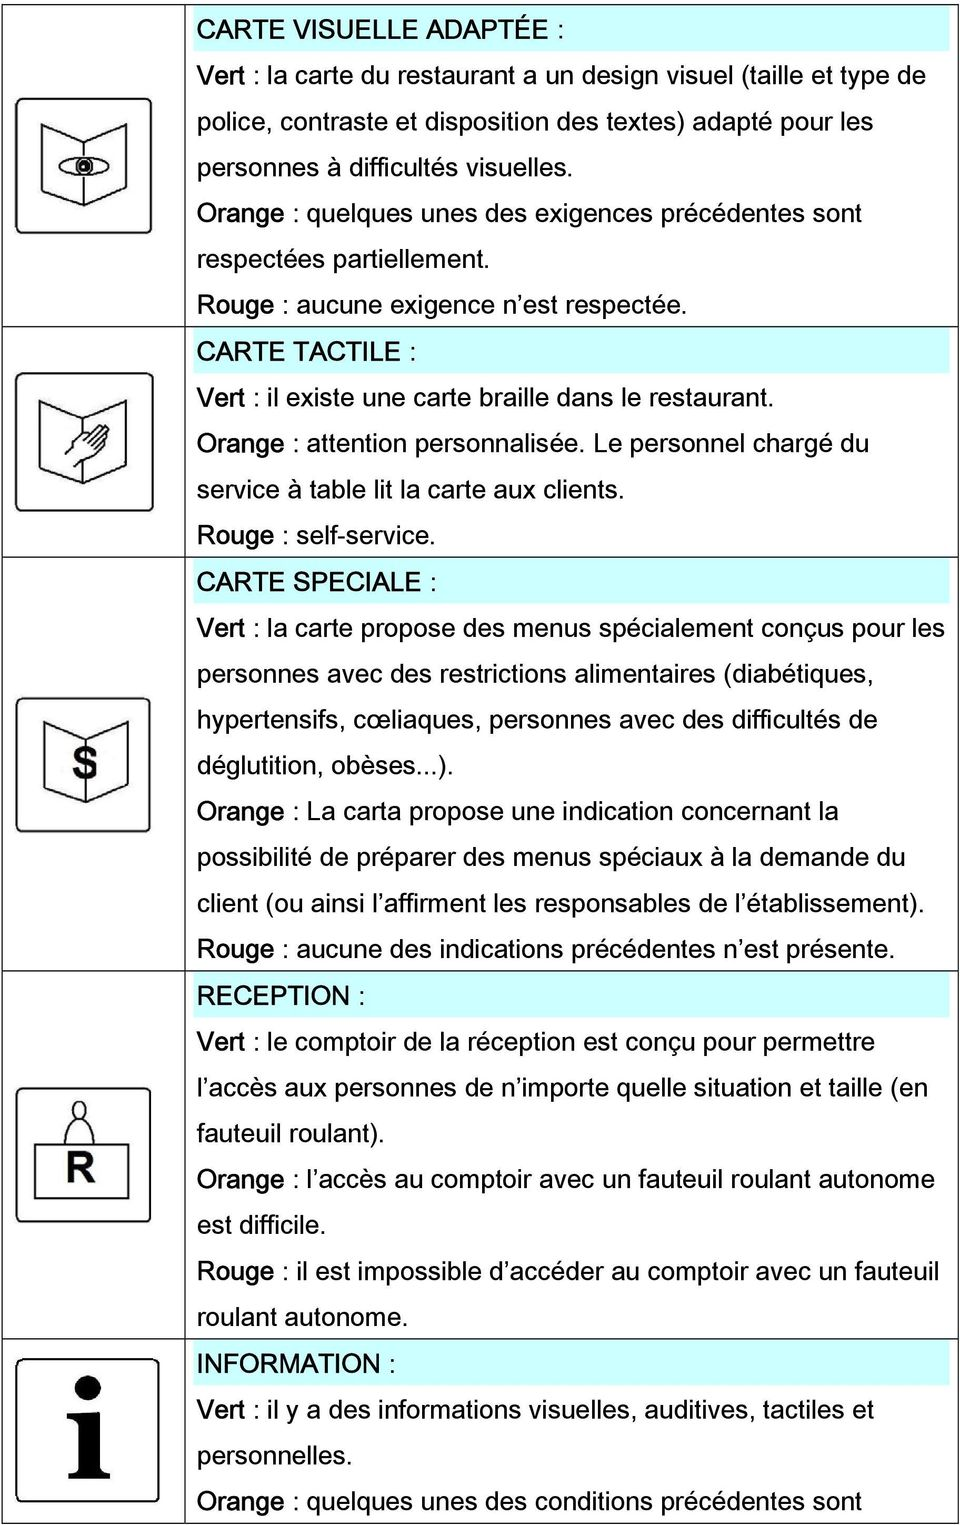 Orange : attention personnalisée. Le personnel chargé du service à table lit la carte aux clients. Rouge : self-service.